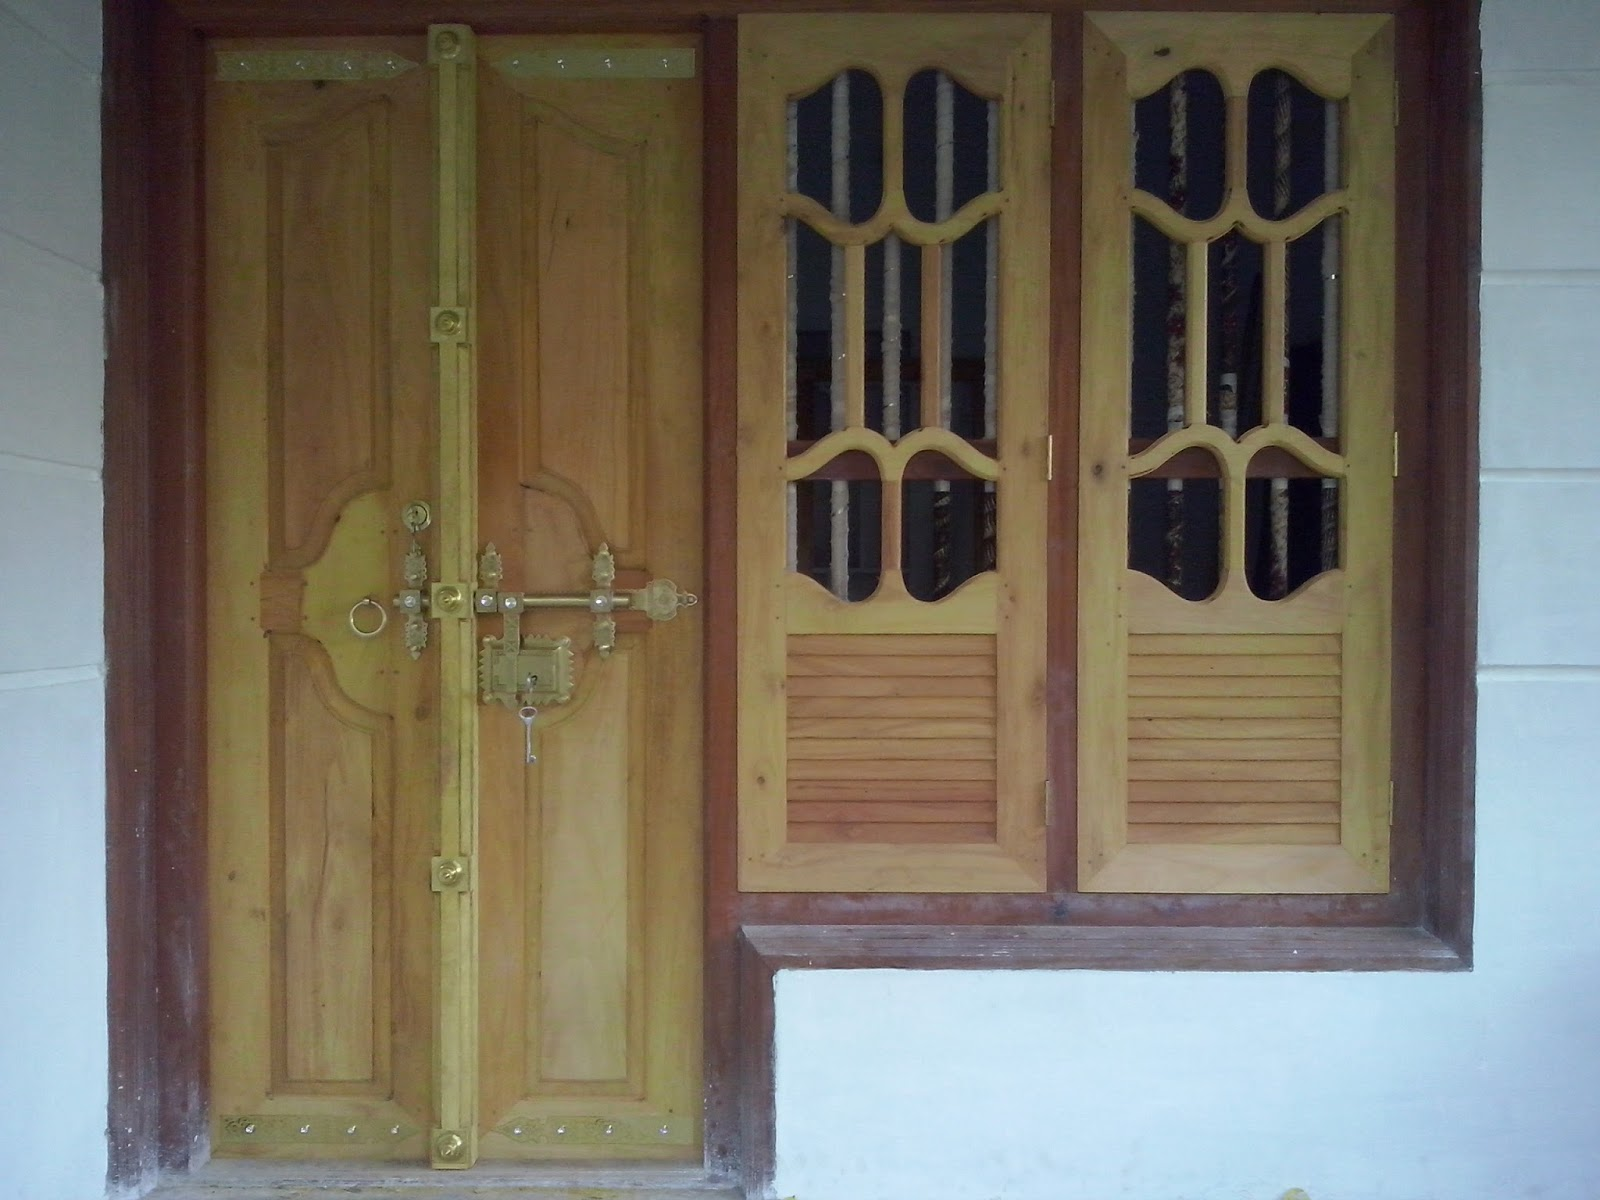 Kerala style carpenter works and designs front entrance for Wooden window design with glass